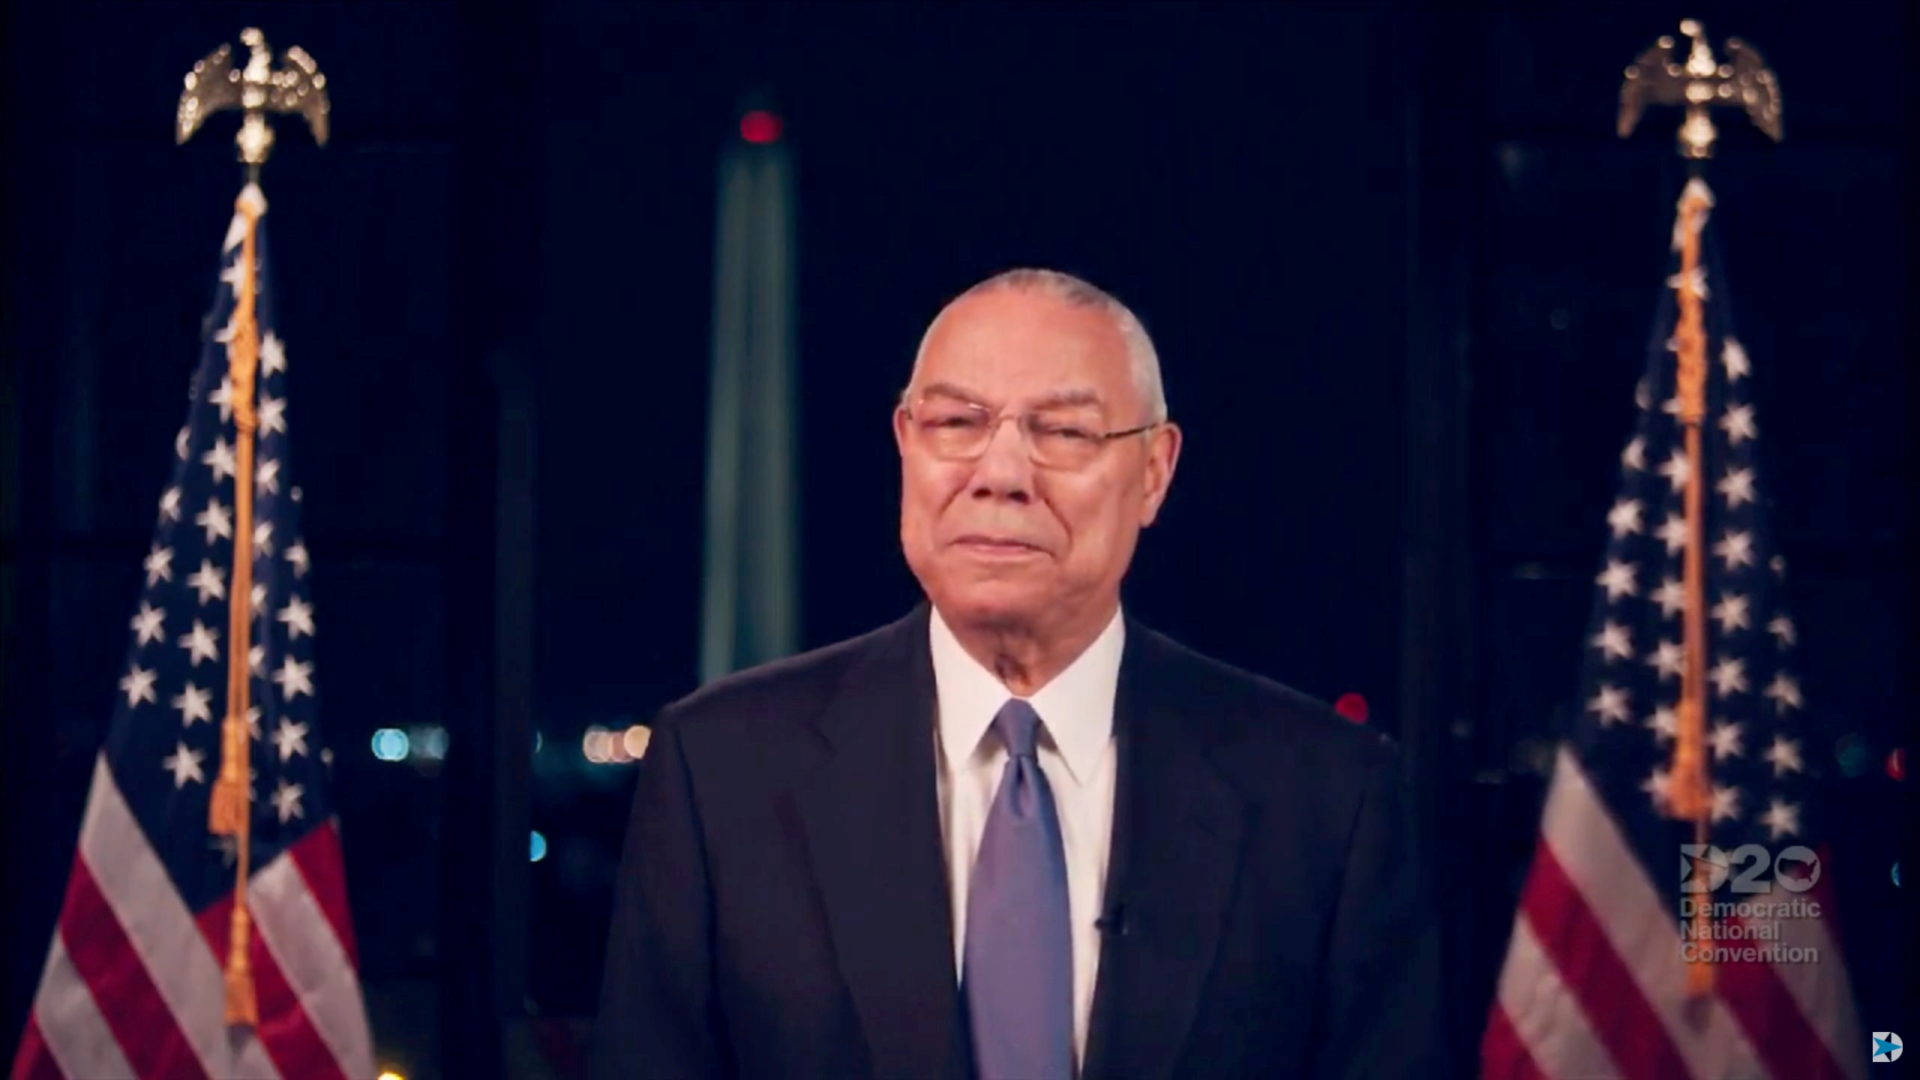 General Colin Powell Dies at 84